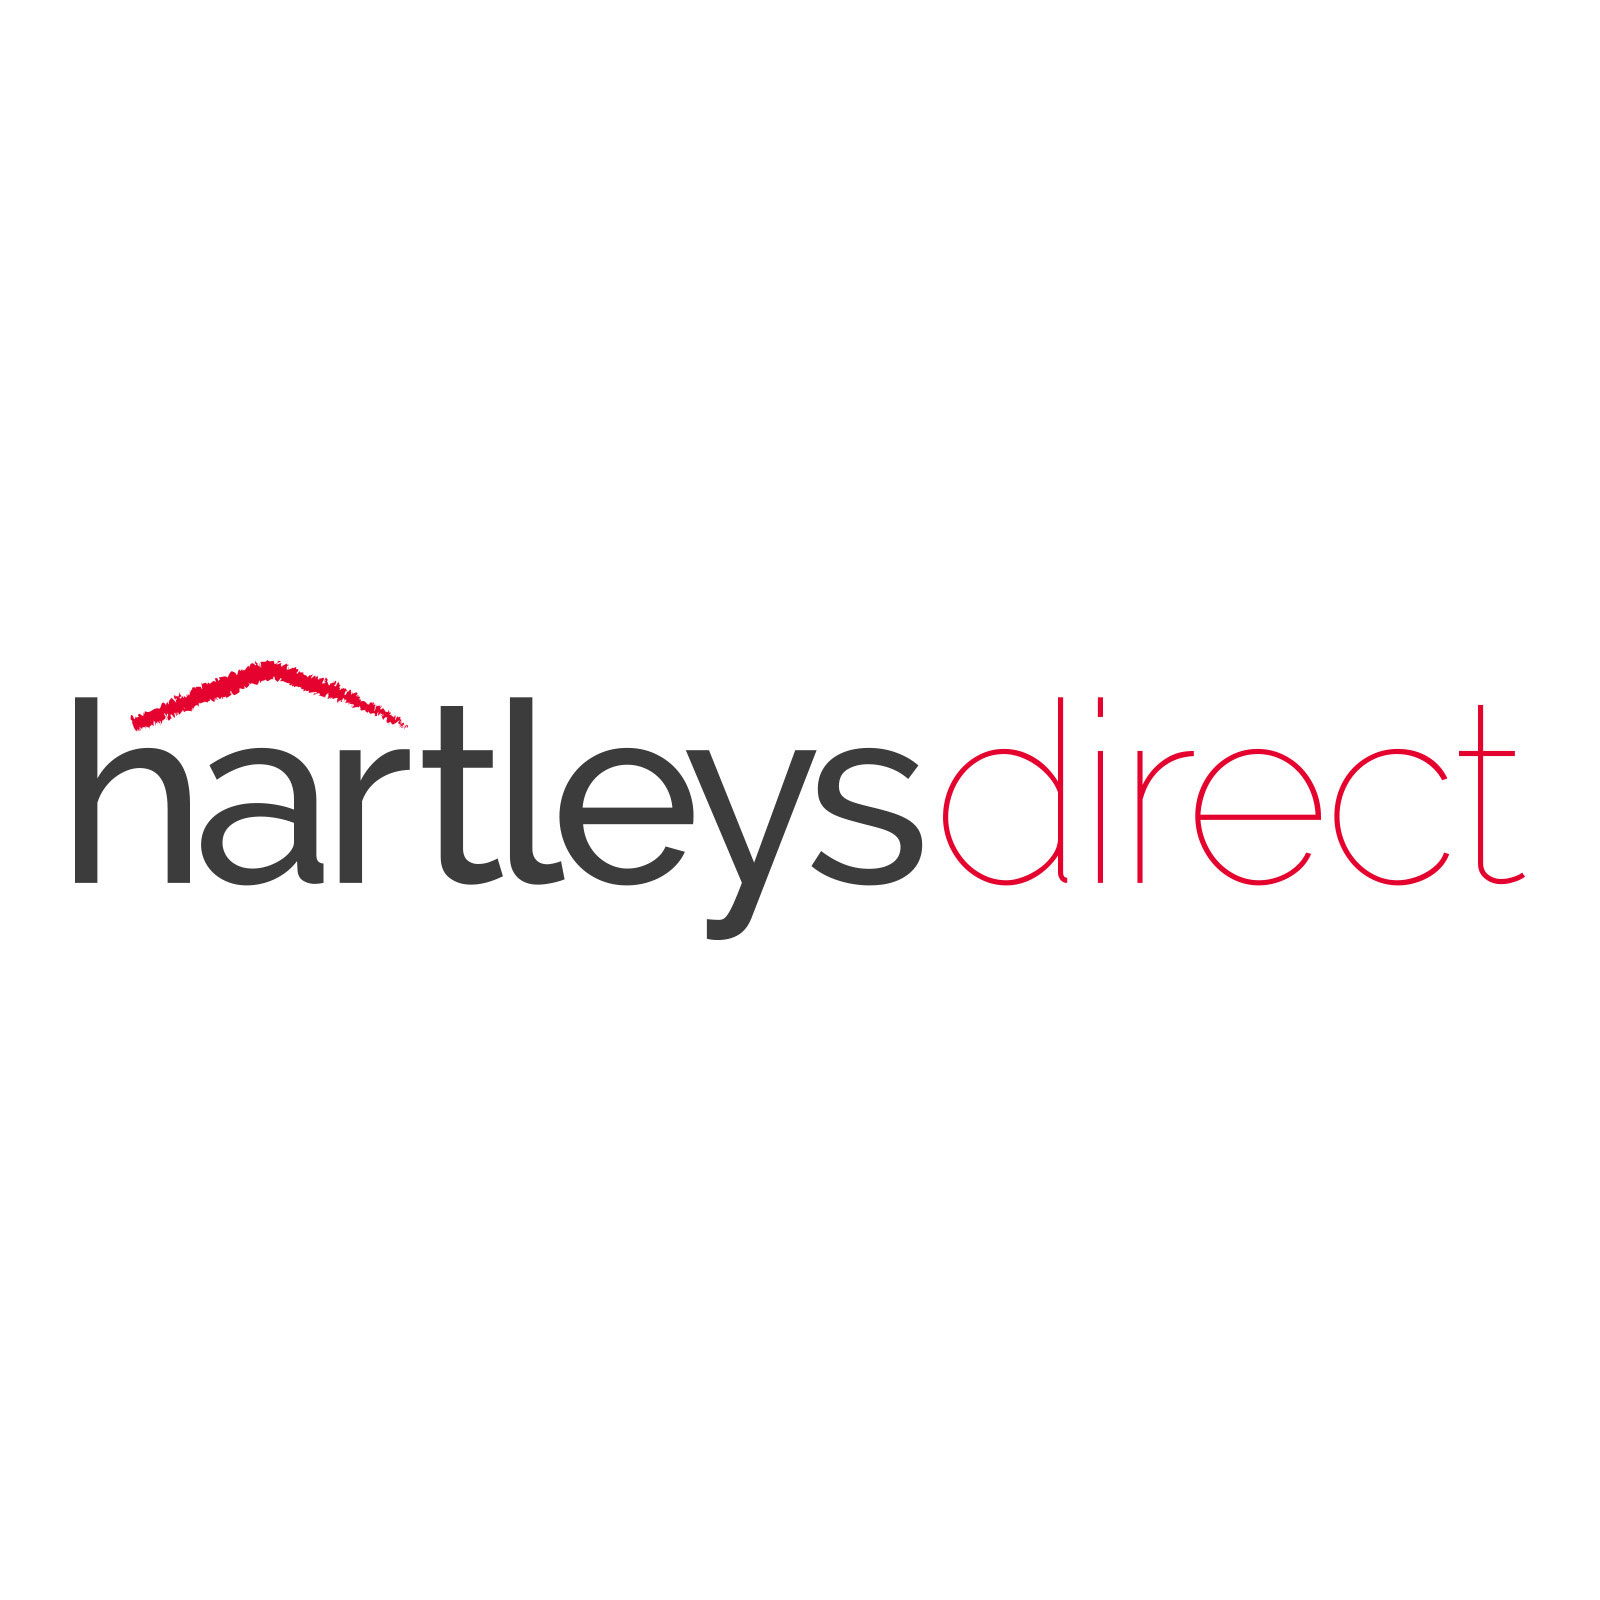 Hartleys-4ft-Round-Folding-Table-with-Accessories-on-White-Background.jpg